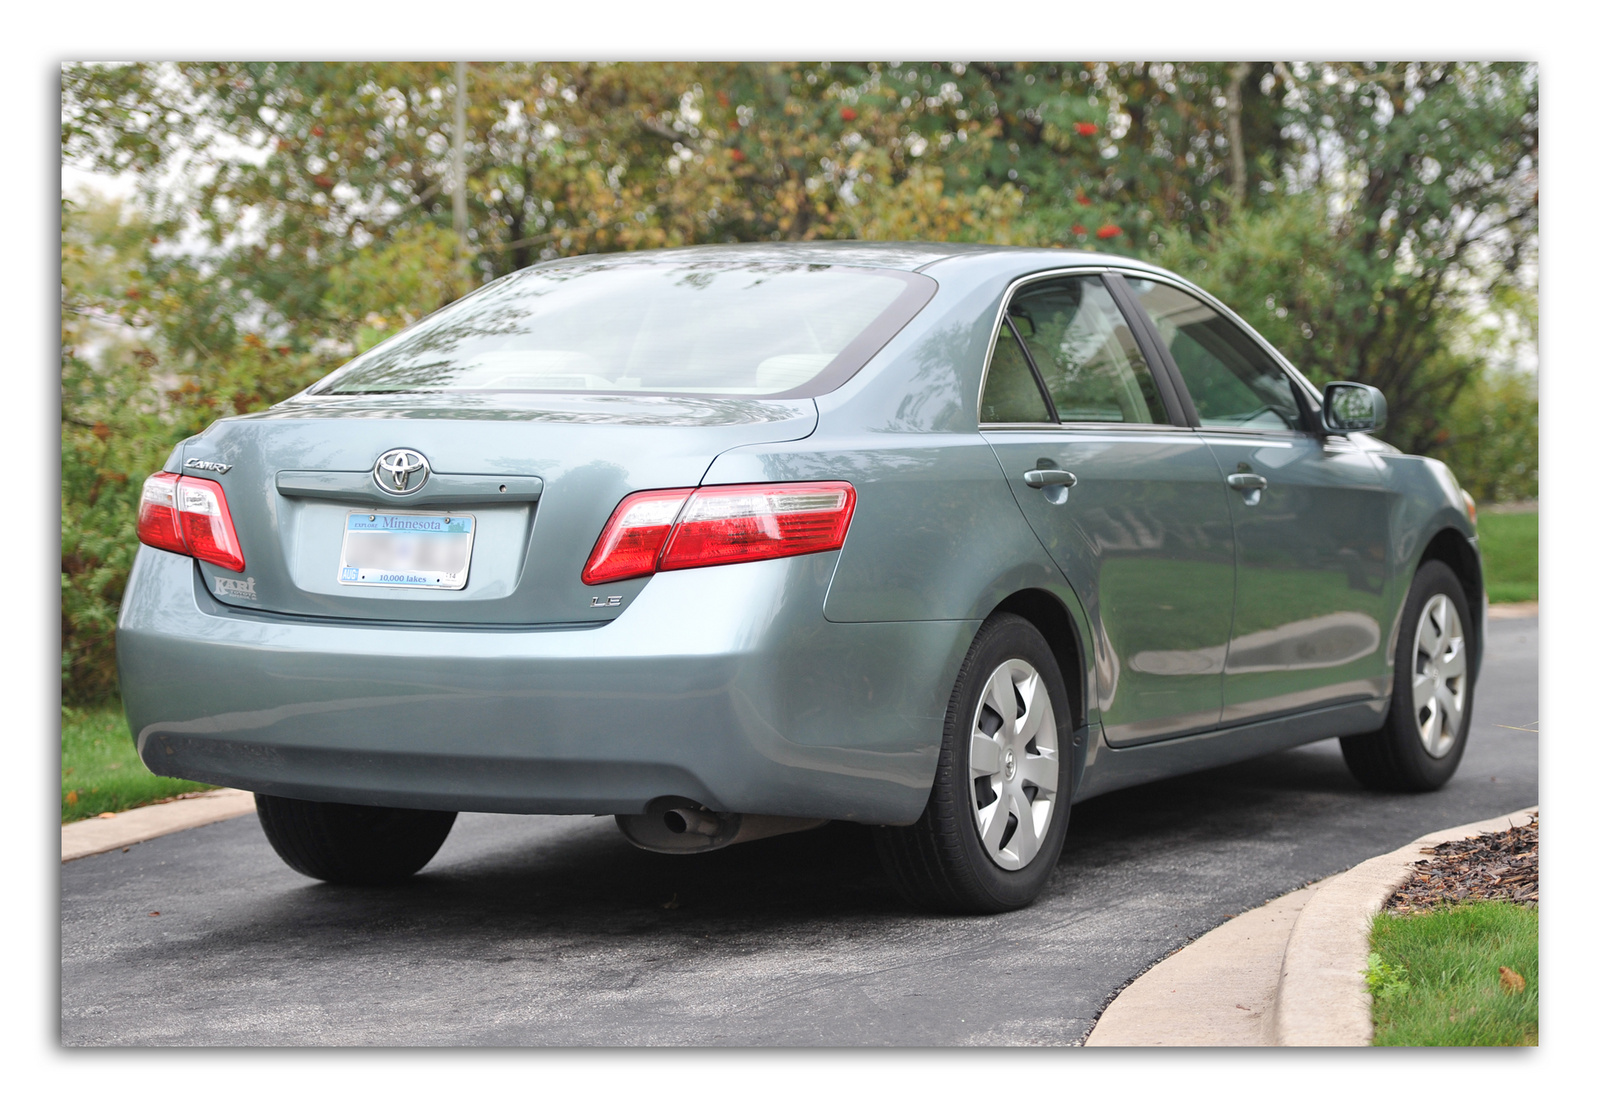 toyota camry 2006 le price 2006 toyota camry pictures cargurus 2006 toyota camry pictures. Black Bedroom Furniture Sets. Home Design Ideas